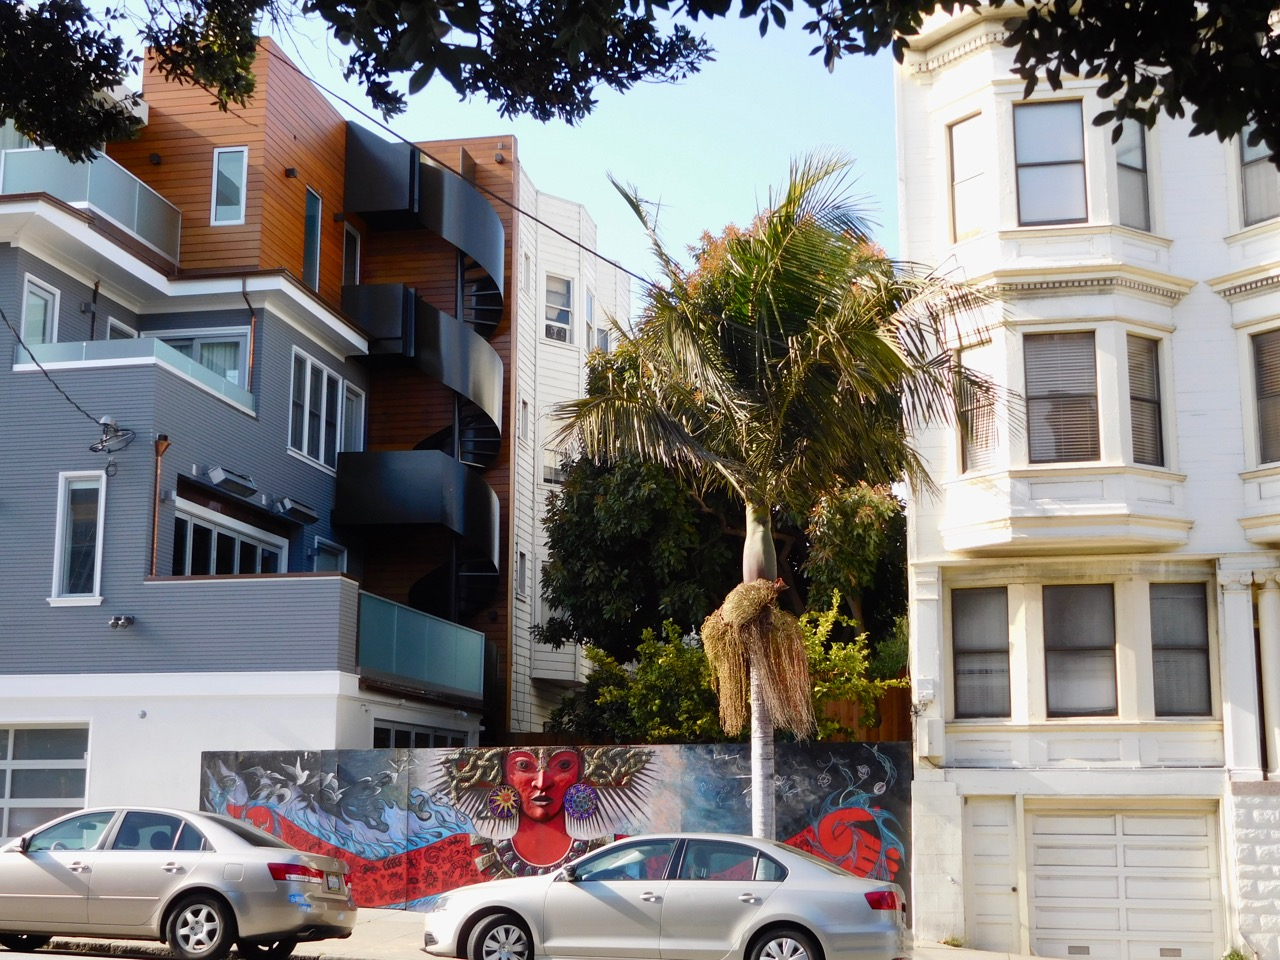 San Francisco Photo Journal - a day in SF (16)